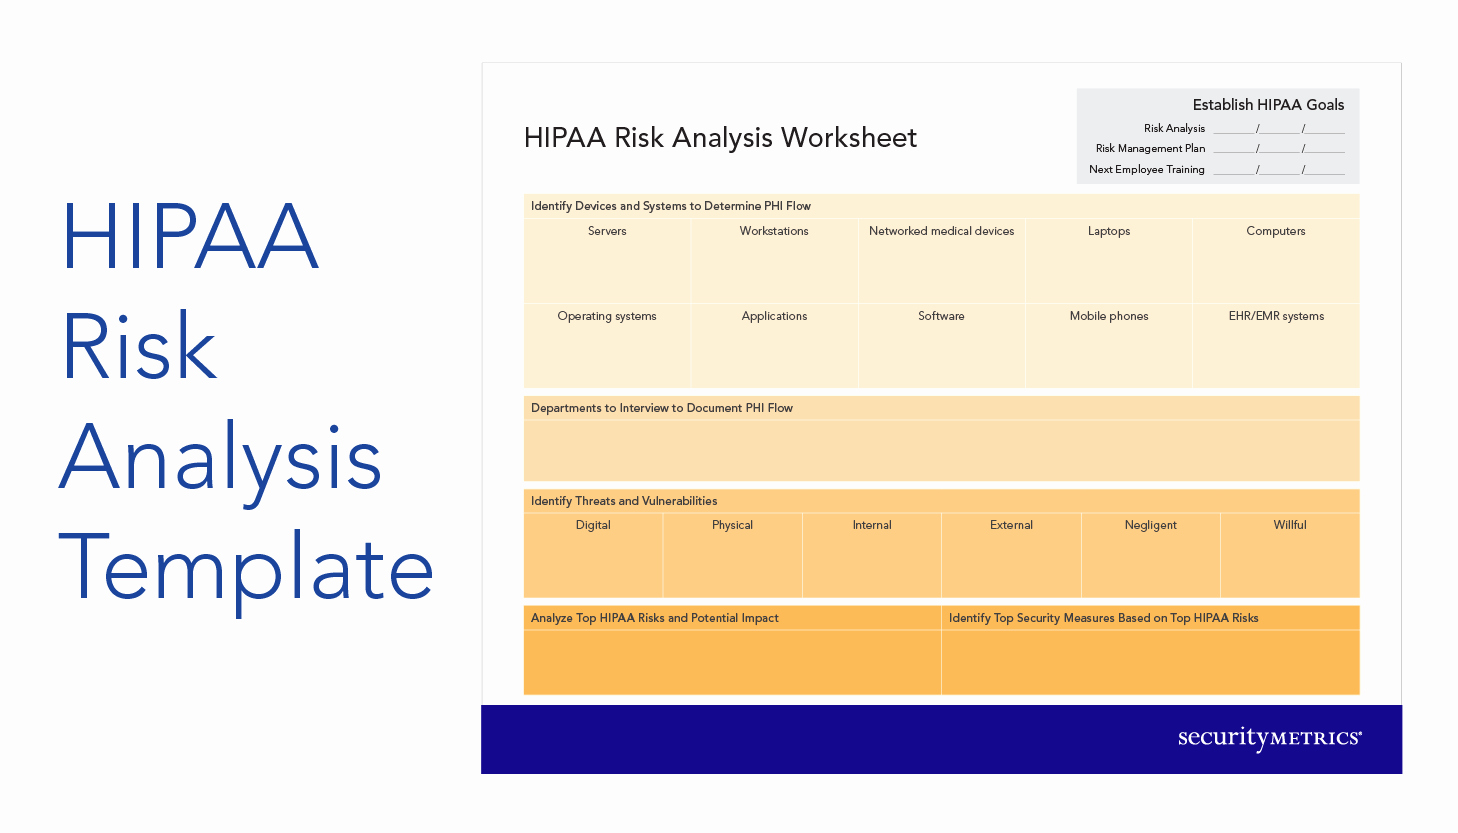 Security Risk Analysis Template Awesome How to Start A Hipaa Risk Analysis